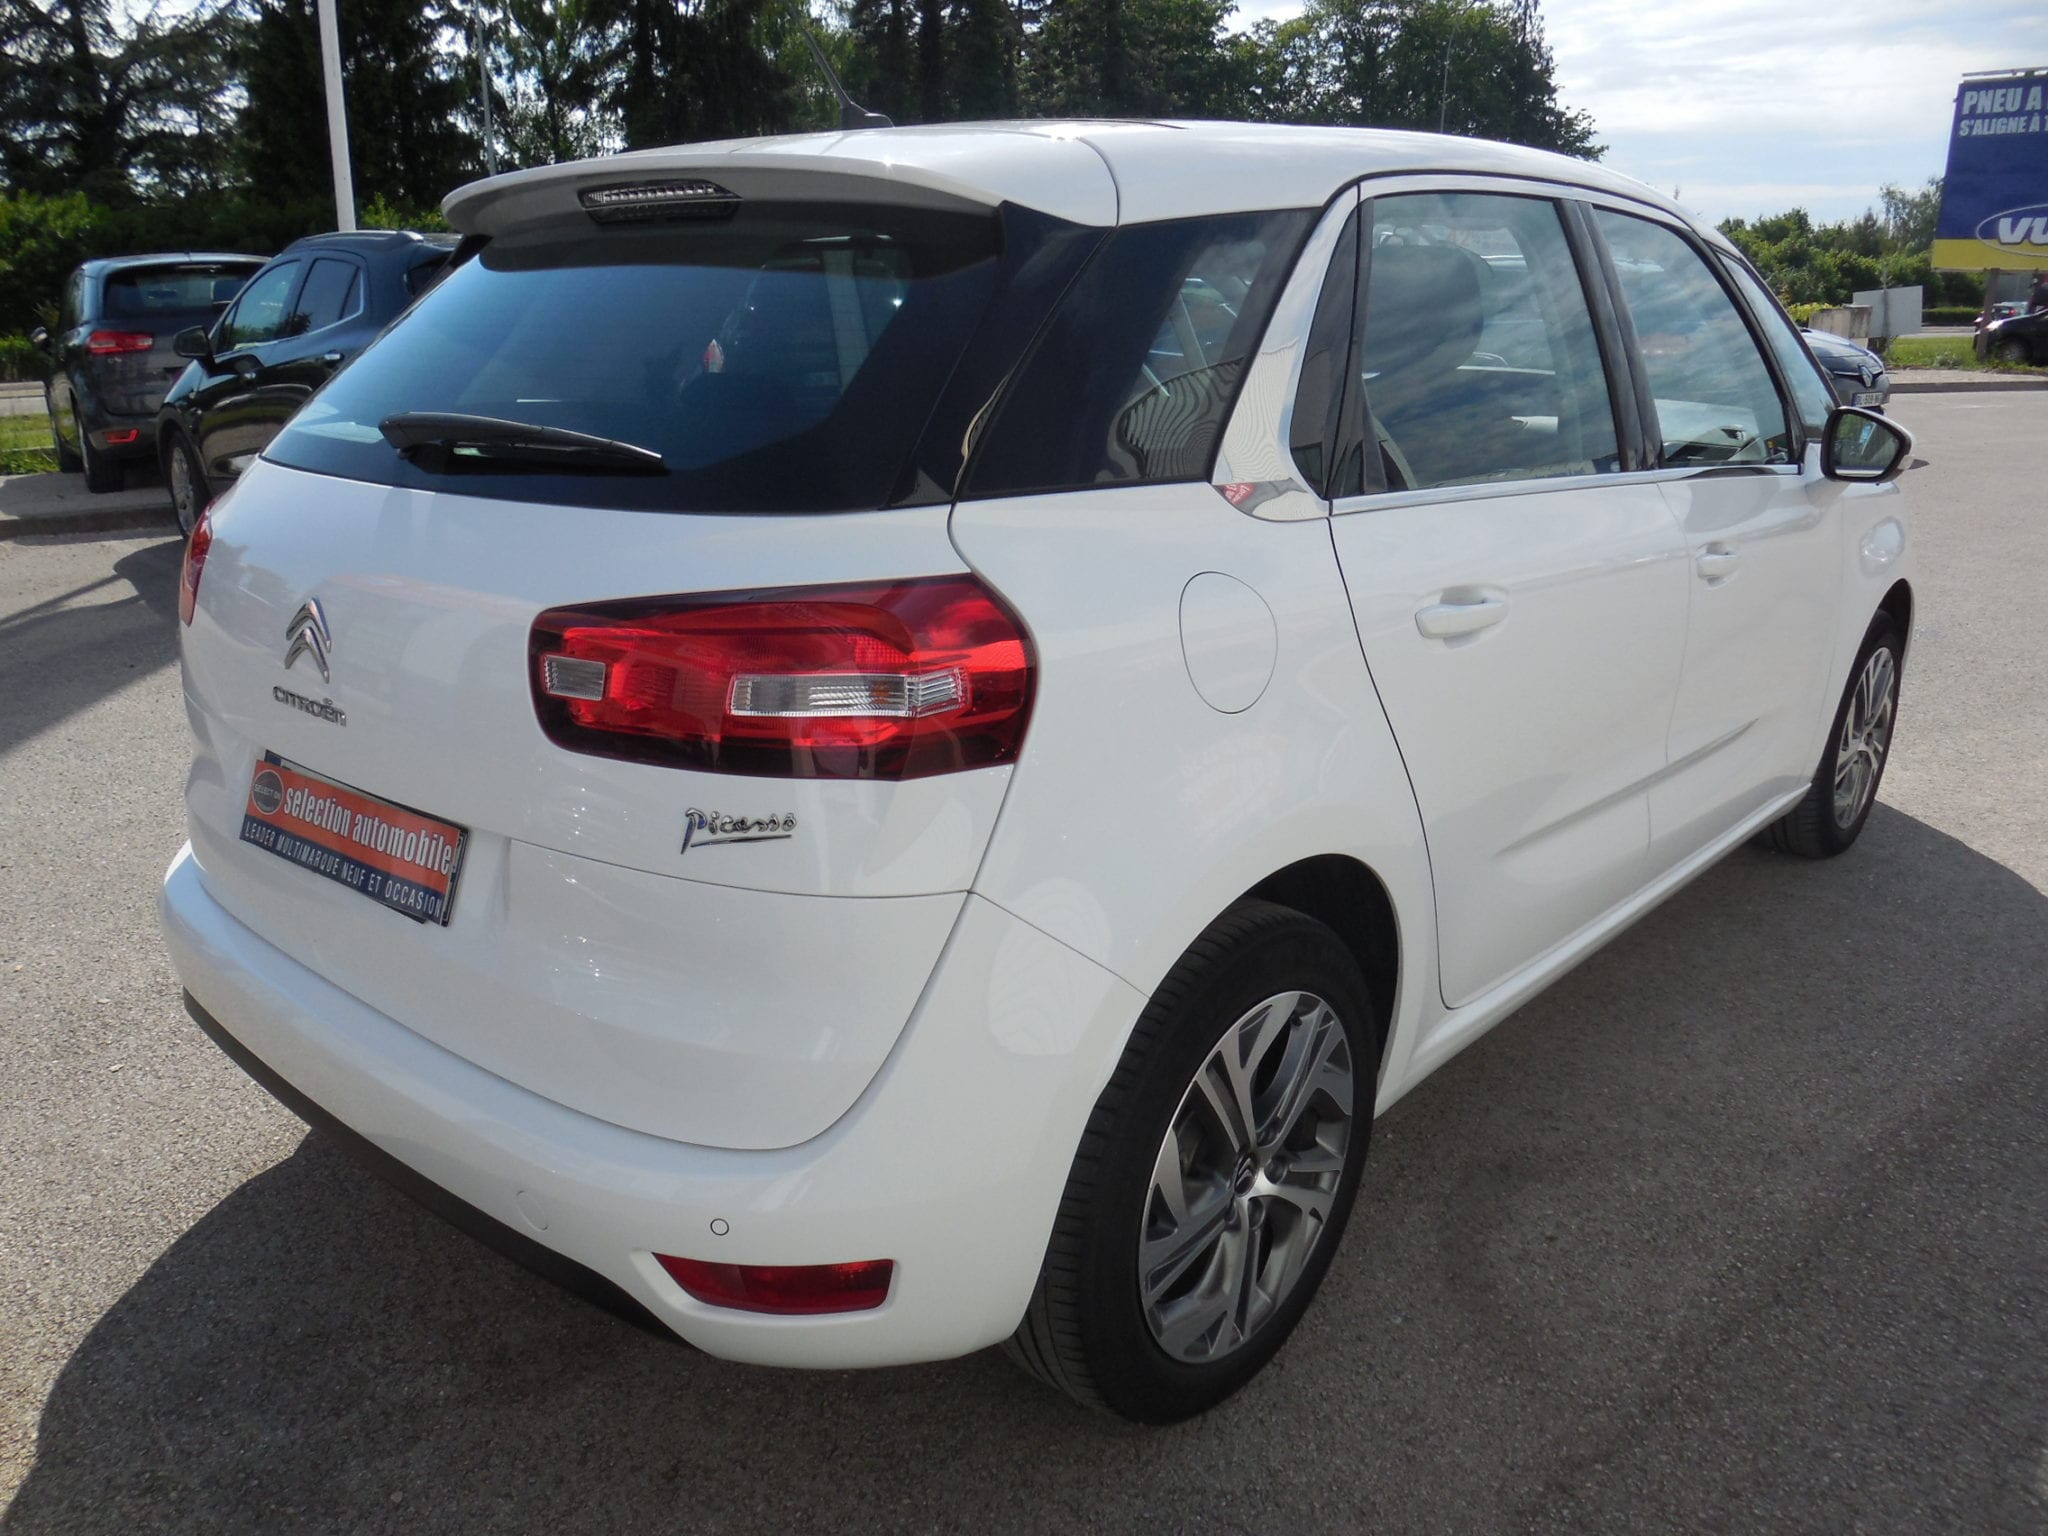 Citroen C4 Picasso COLLECTION eHDI+OPTIONS 30446 KMS  - Image 4